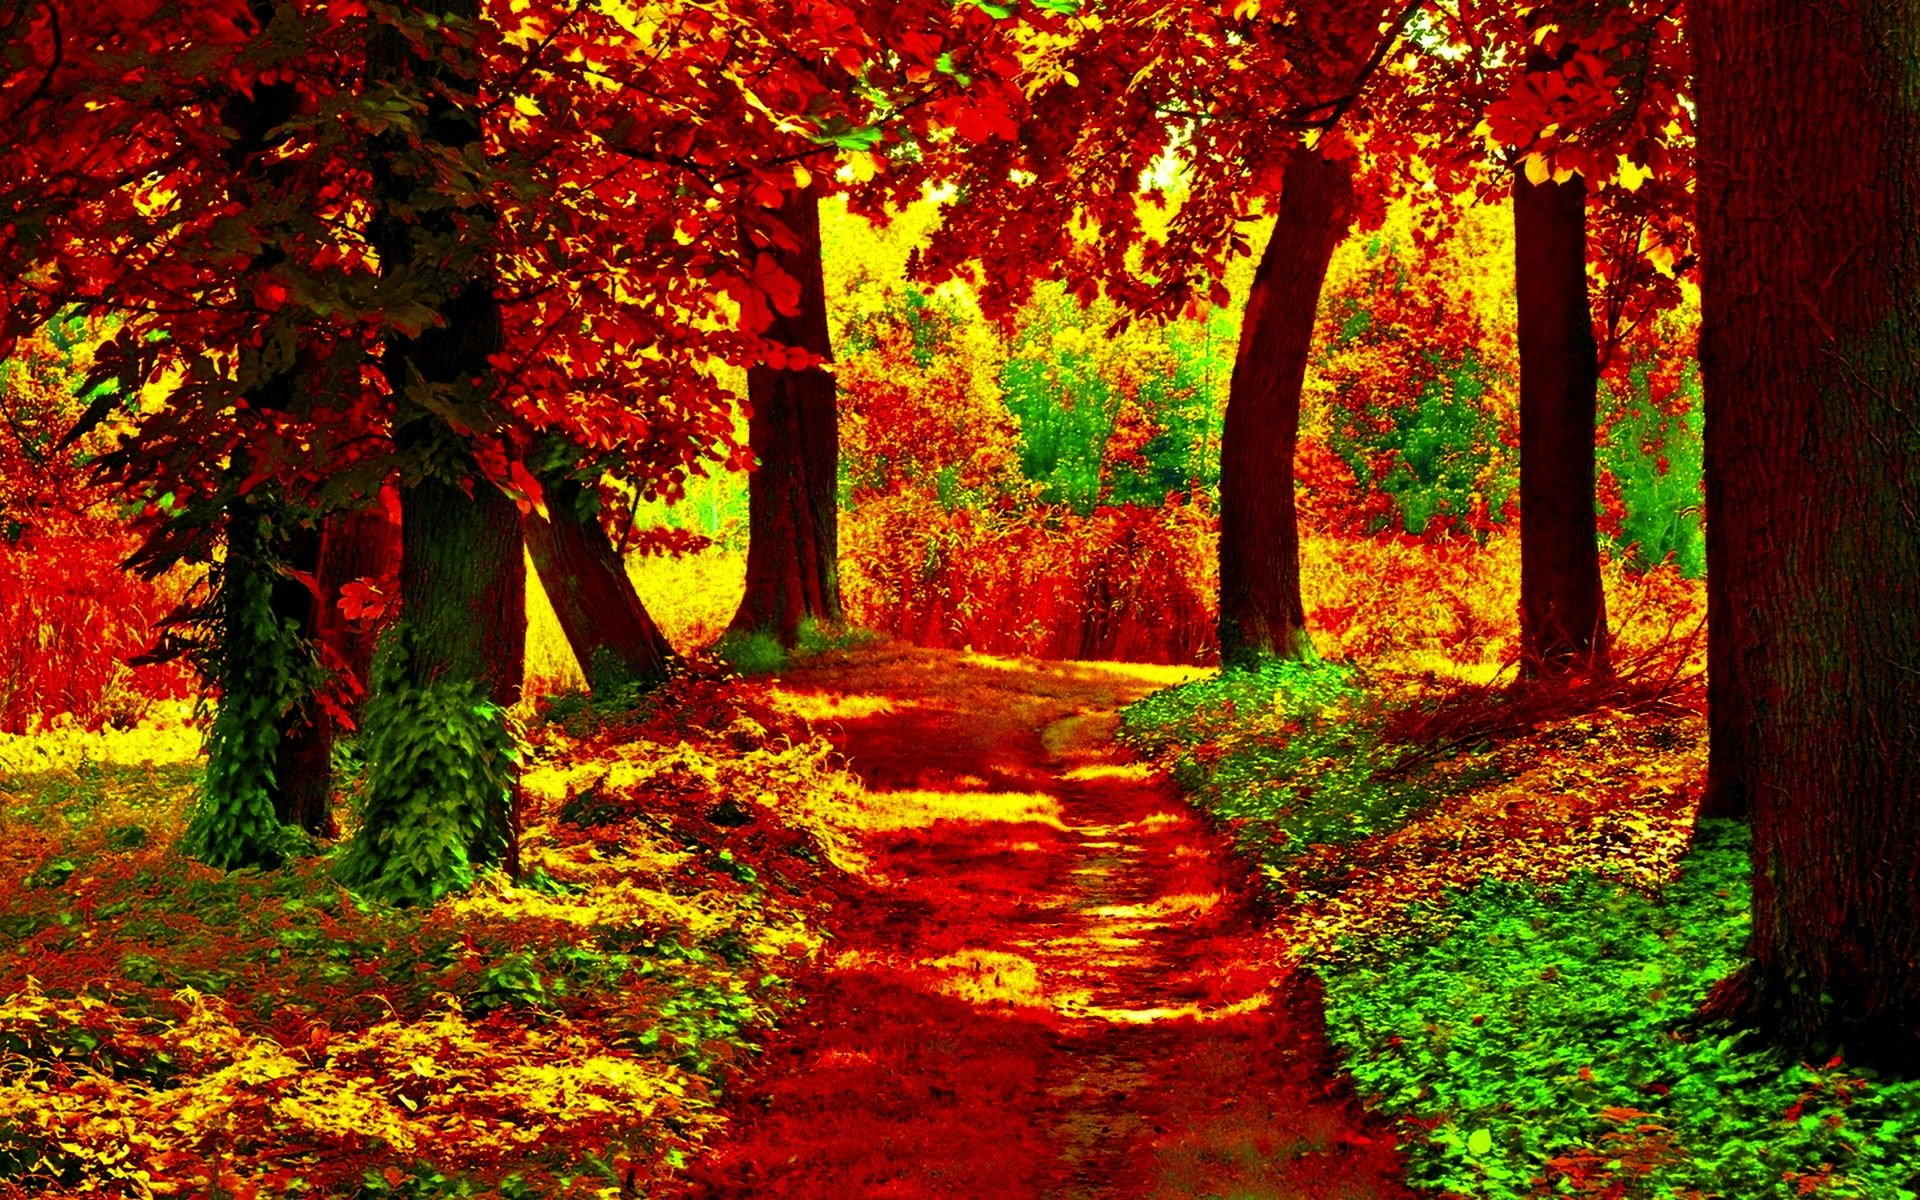 Full Screen Backgrounds Beautiful Photo: Path In Autumn Forest Full HD Wallpaper And Background